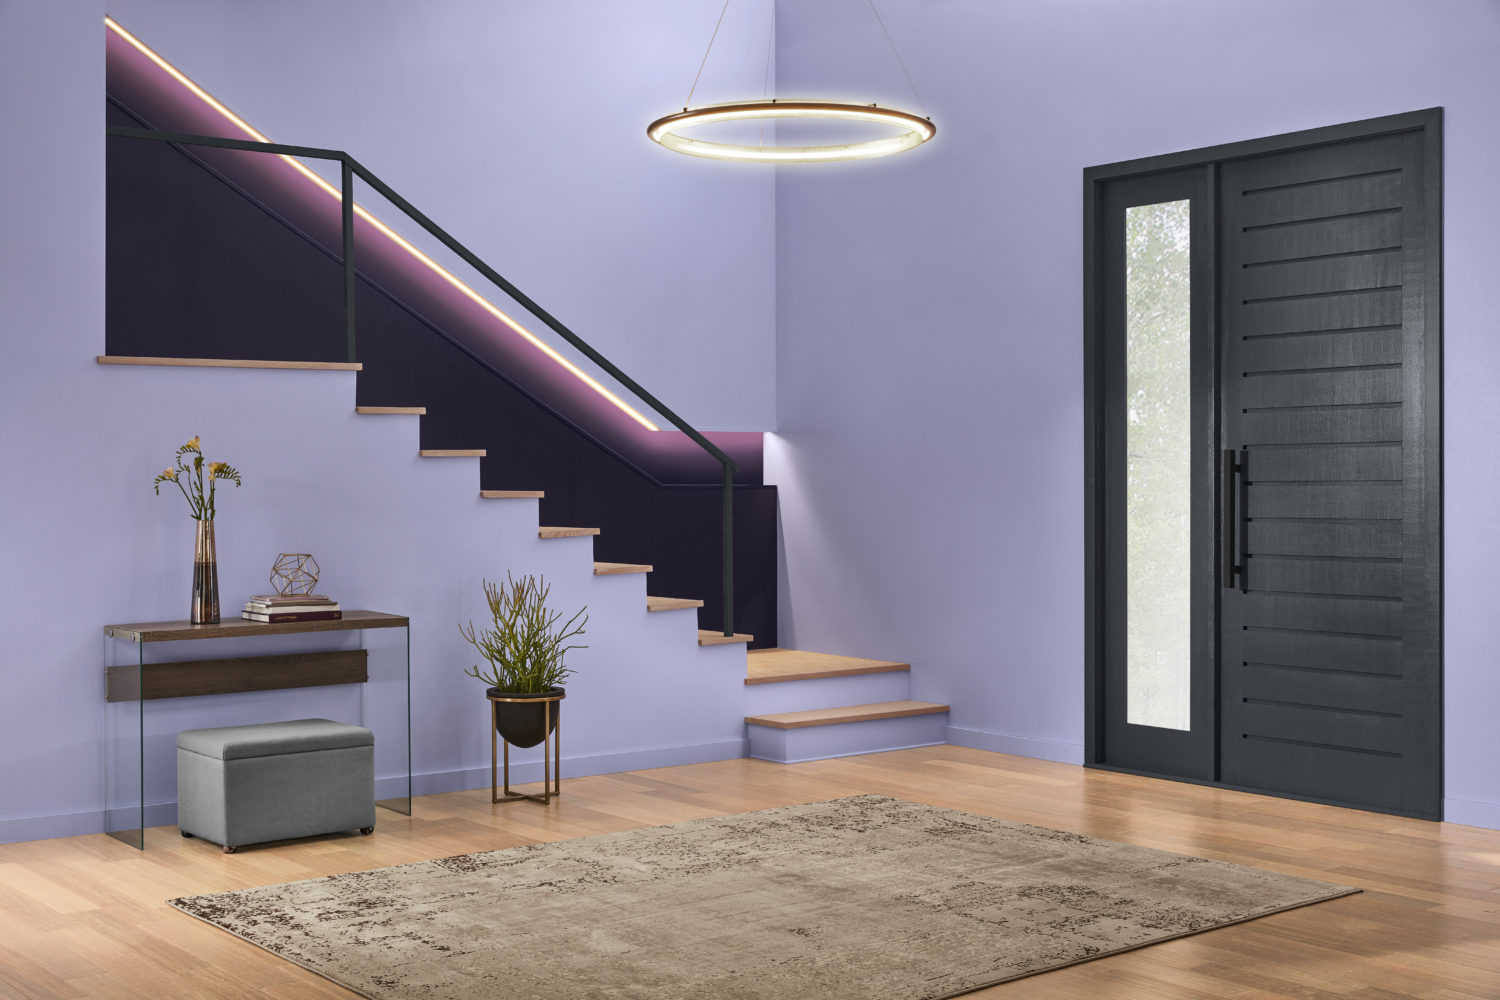 Valspar 2019 Color of the Year- Twilight Mist 002 RGB